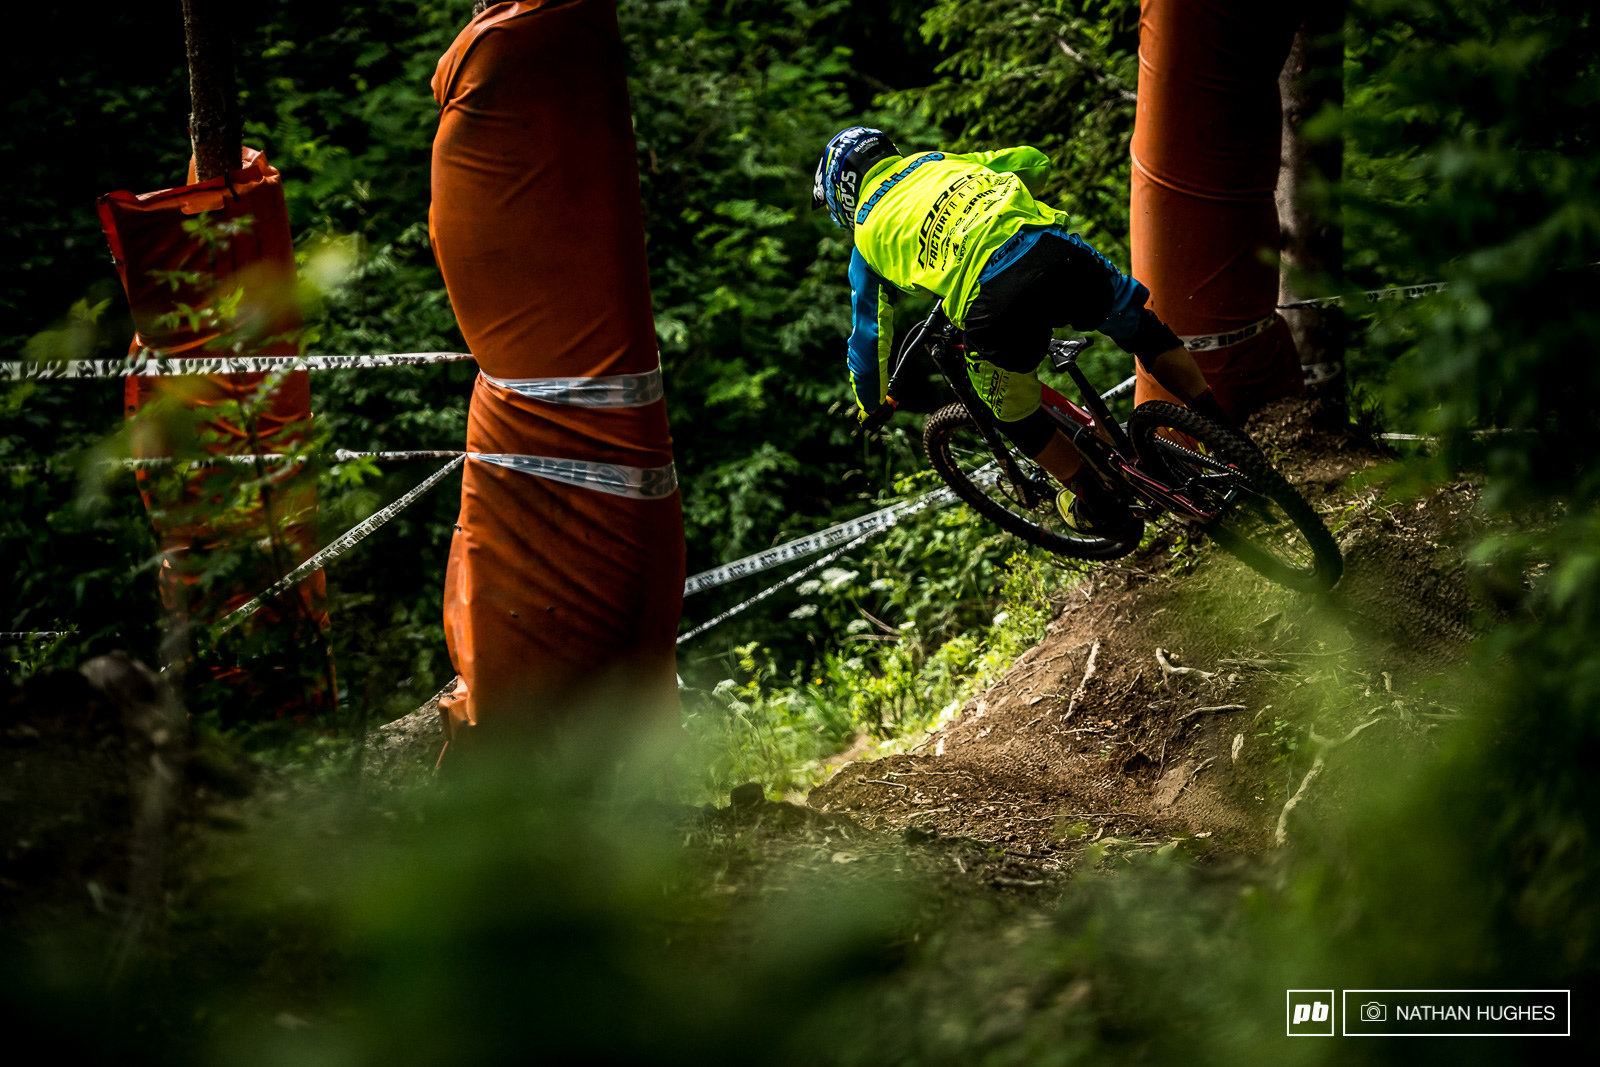 Sam Blenkinsopp enjoyed the old school vibes of the Les Gets course but just missed out on the top 10.